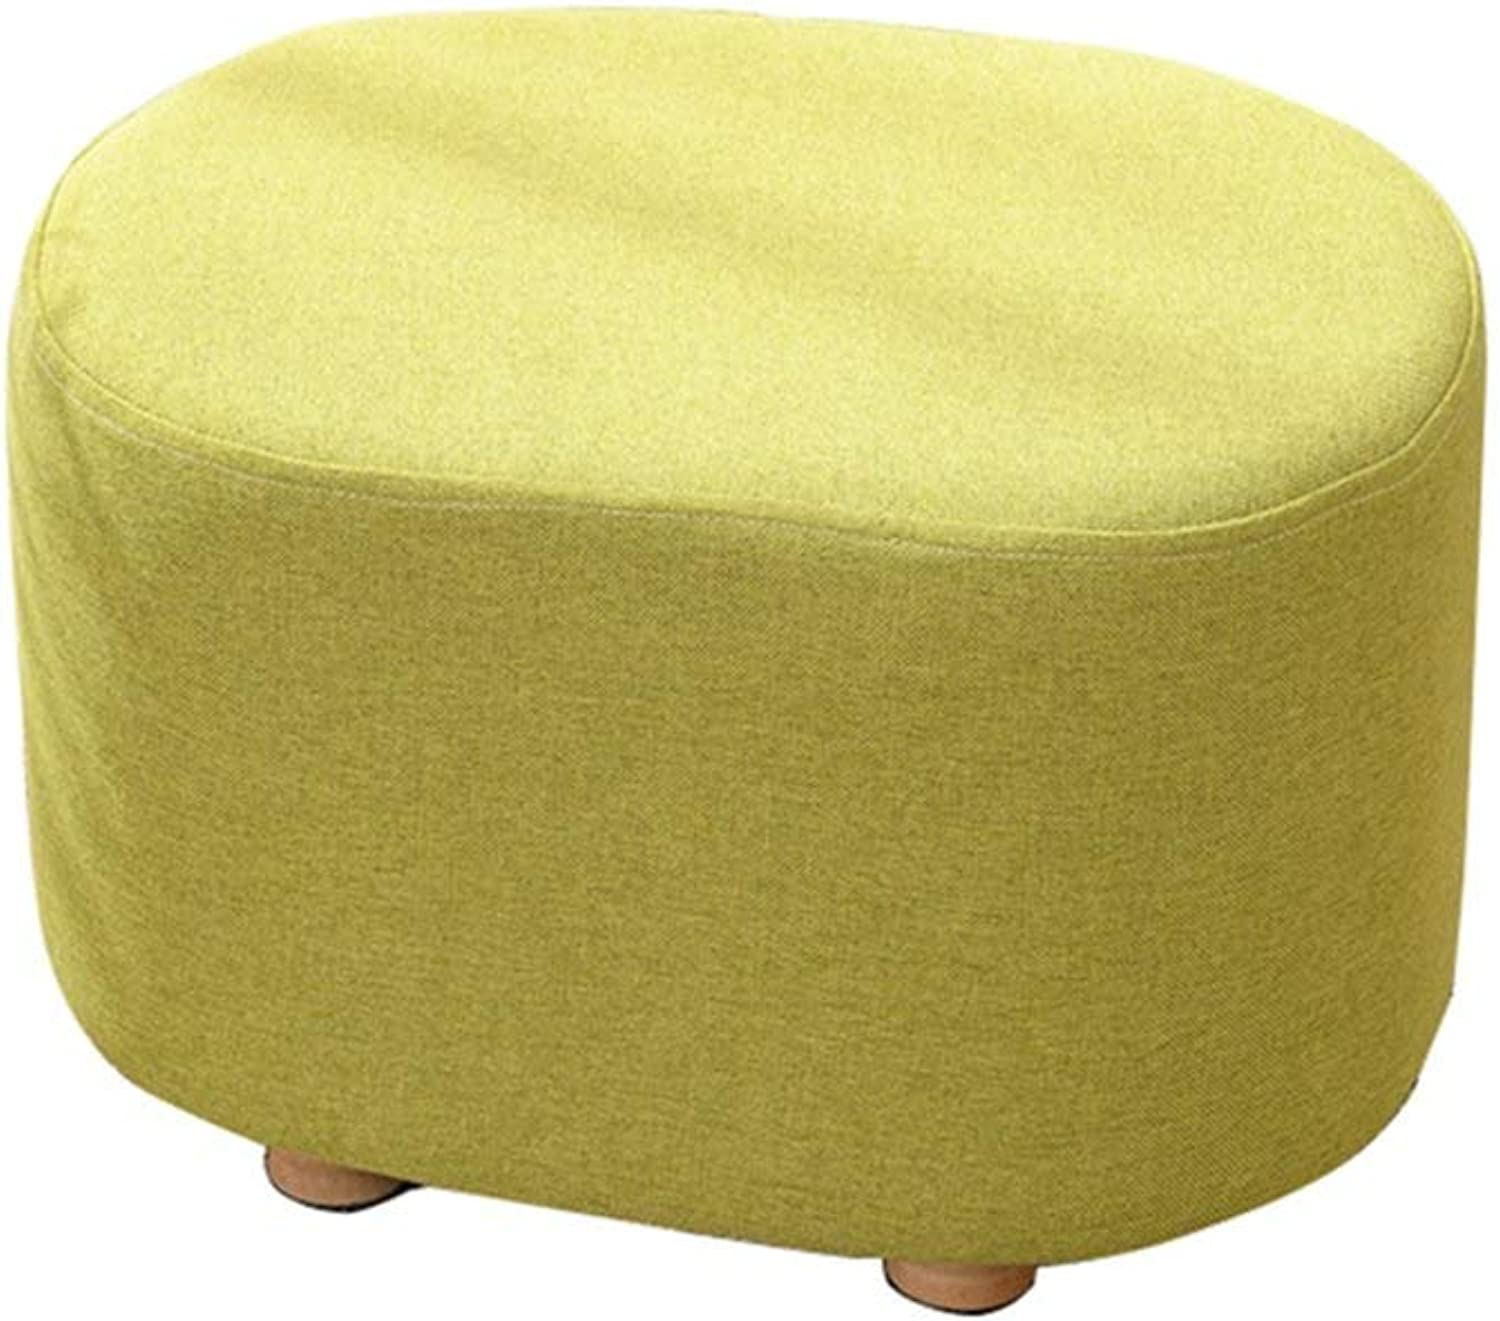 Dengzi Low Stool Bench Change shoes Bench Sofa Stool Ankle Easy to Clean Fabric Solid Wood Home Living Room European Creative Oval Short Dwarf Small Stool (color   Yellow)